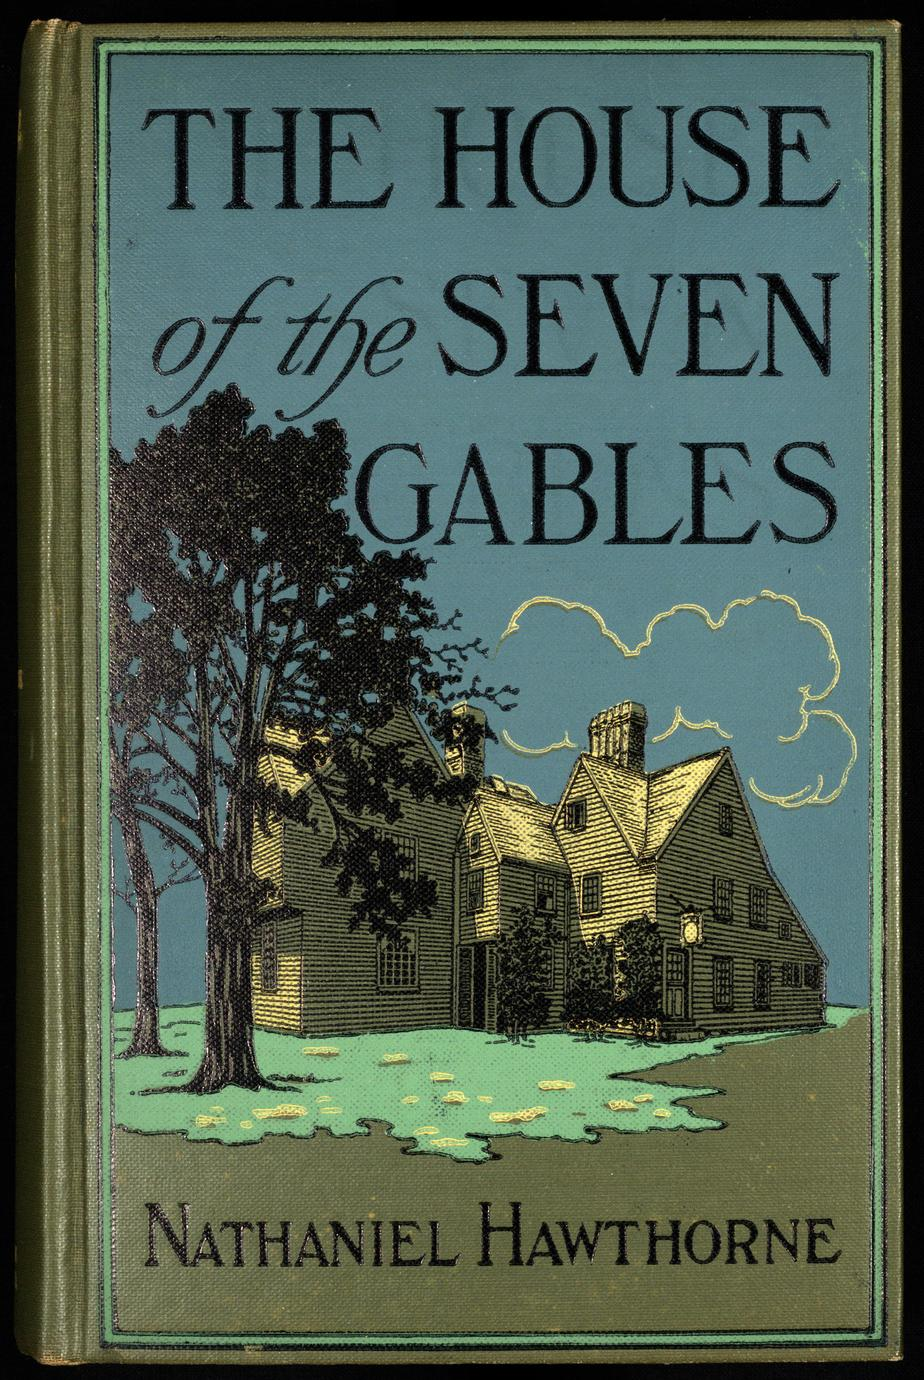 The house of the seven gables (1 of 2)